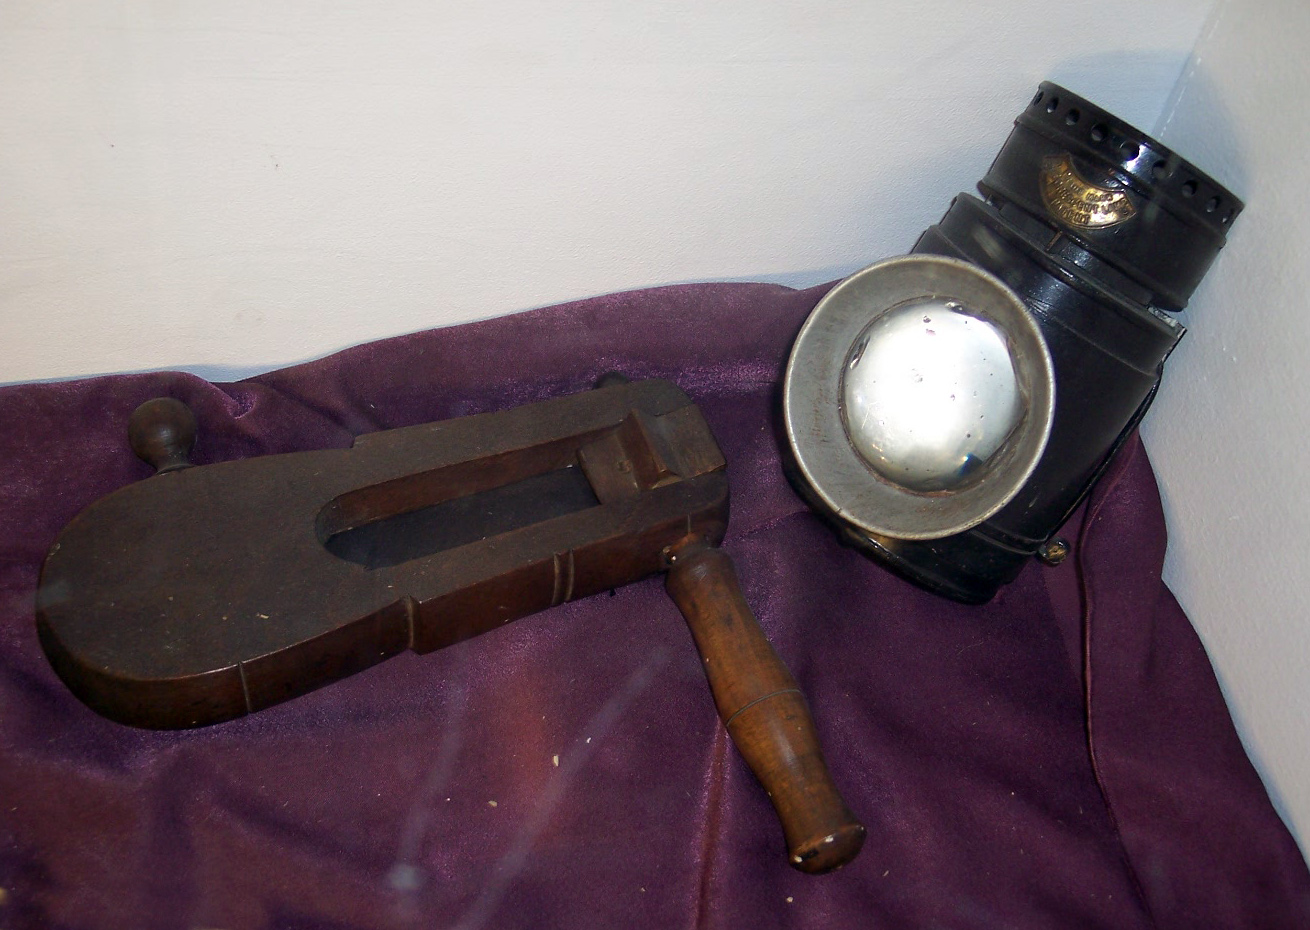 19th century police equipment - Lantern and rattle.